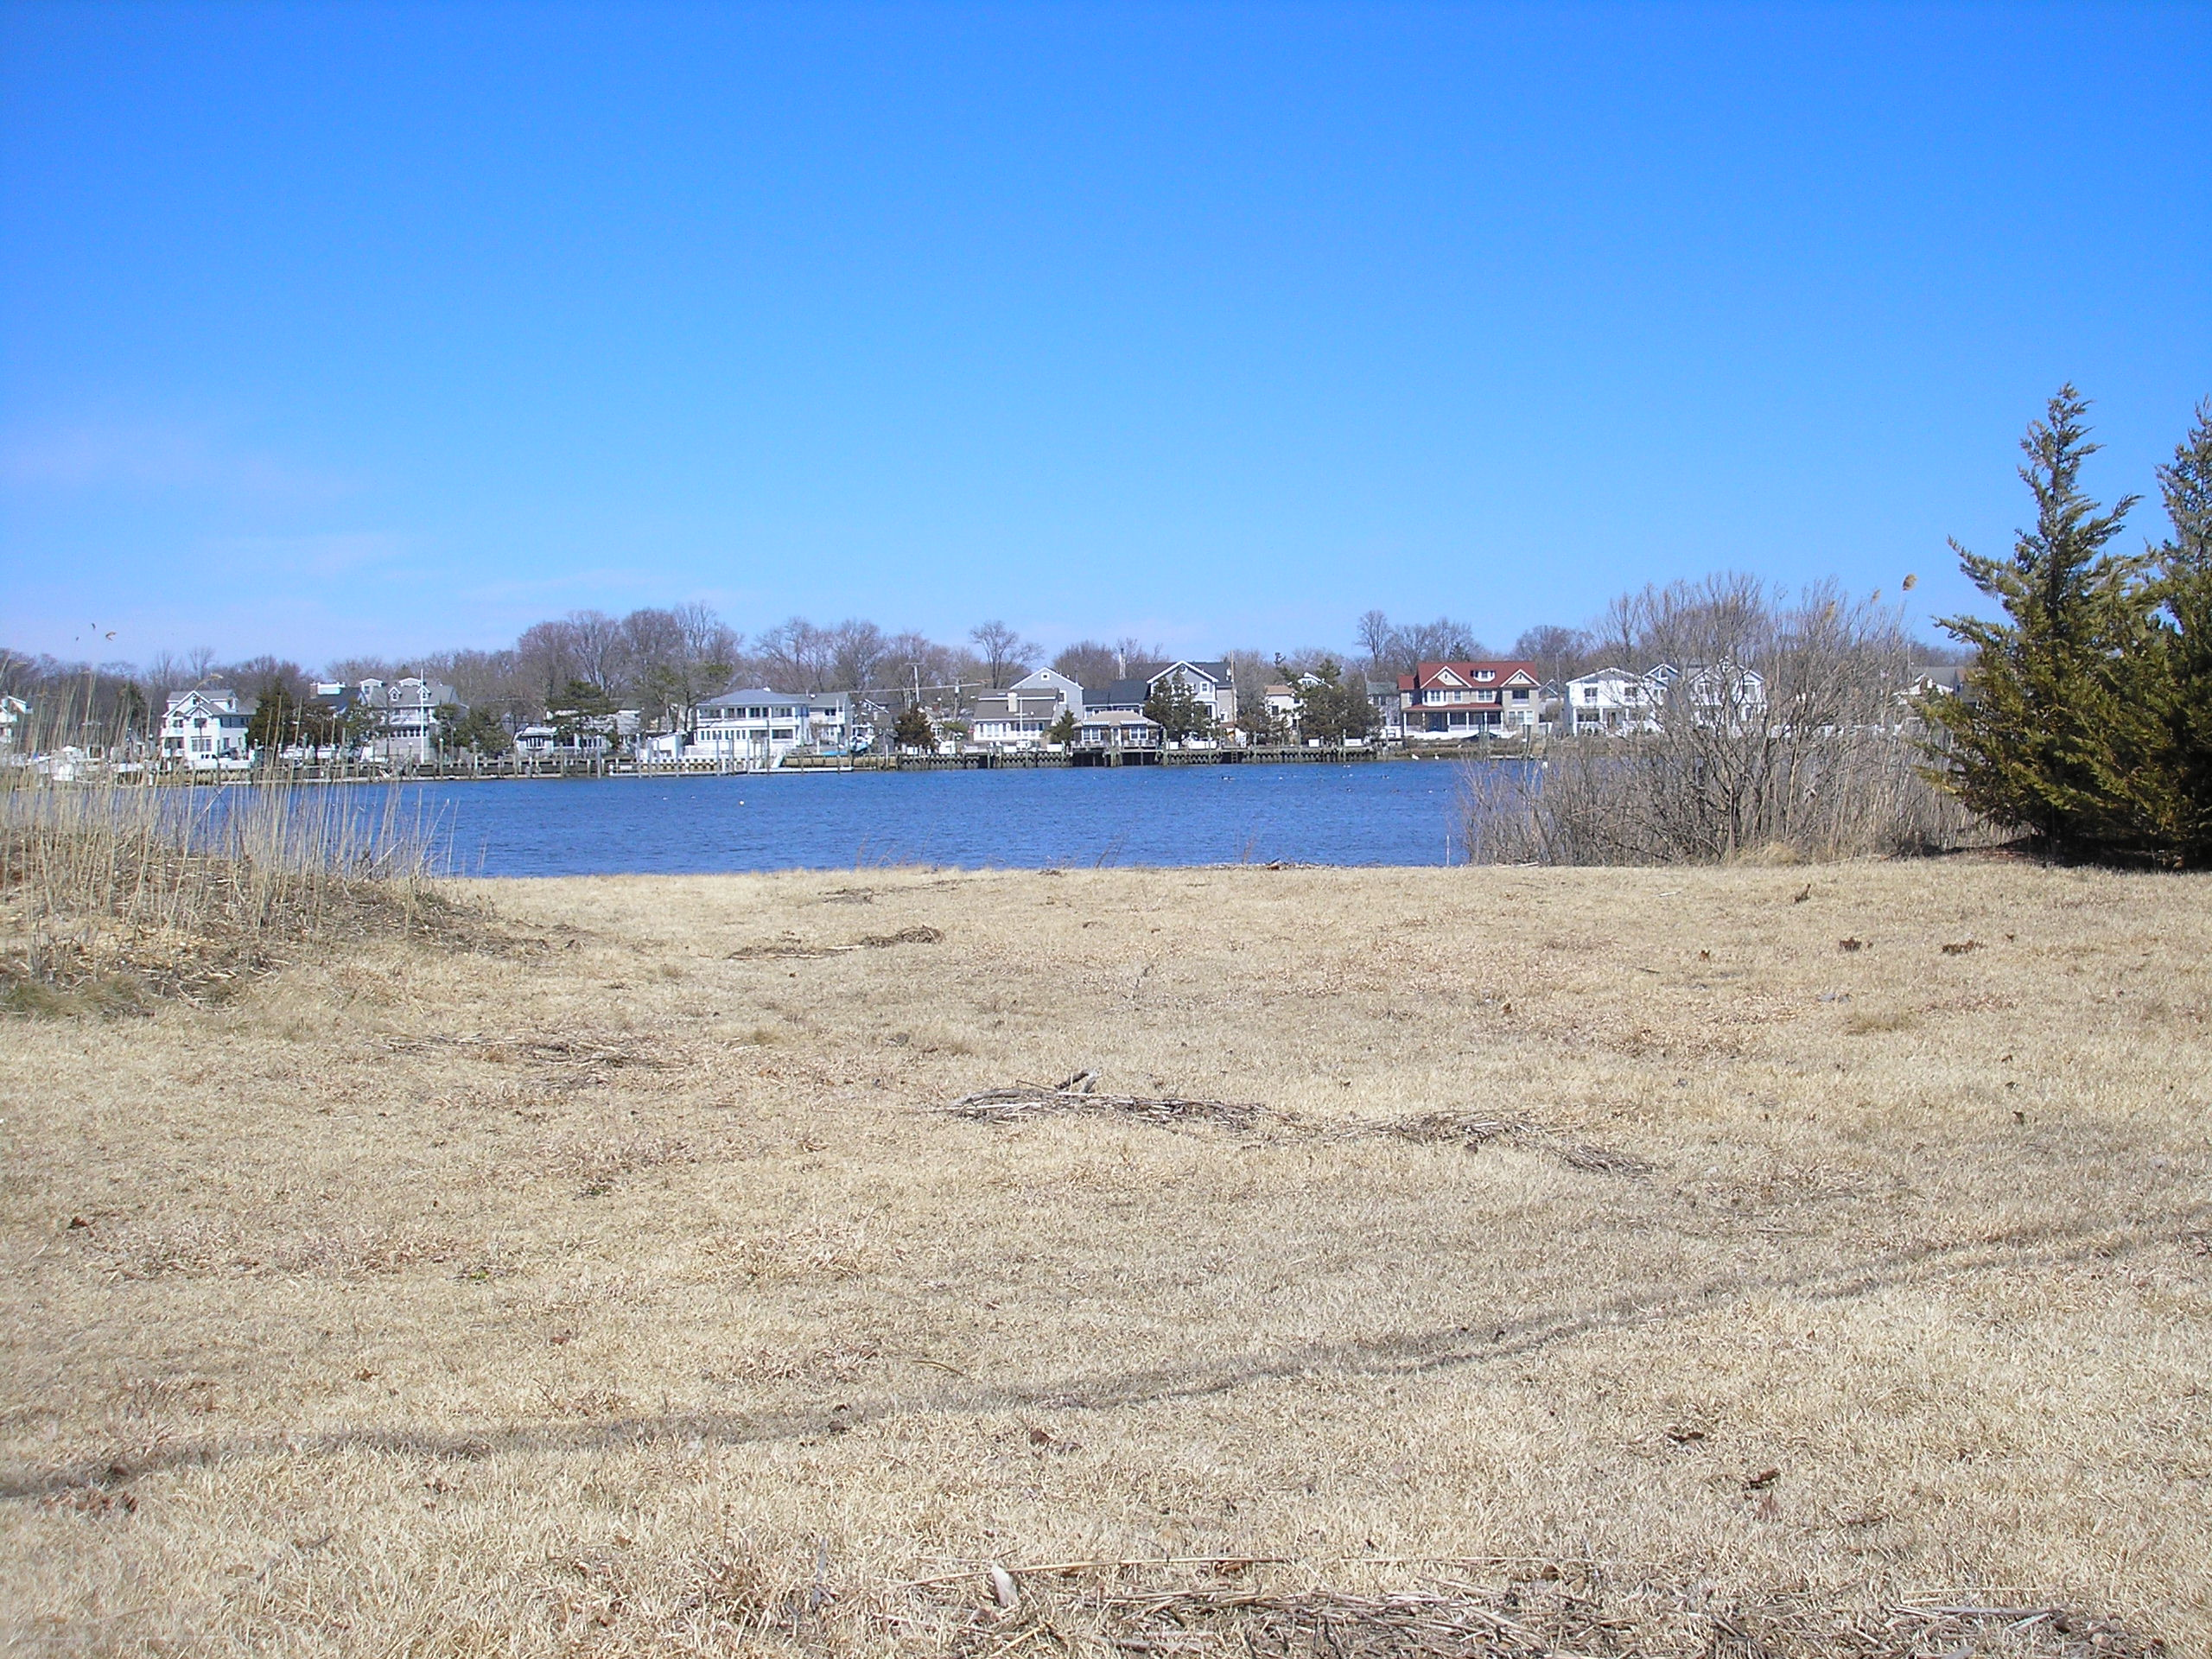 Land for Sale at Land in Brielle 329 E. Magnolia Avenue Brielle, New Jersey 08730 United States